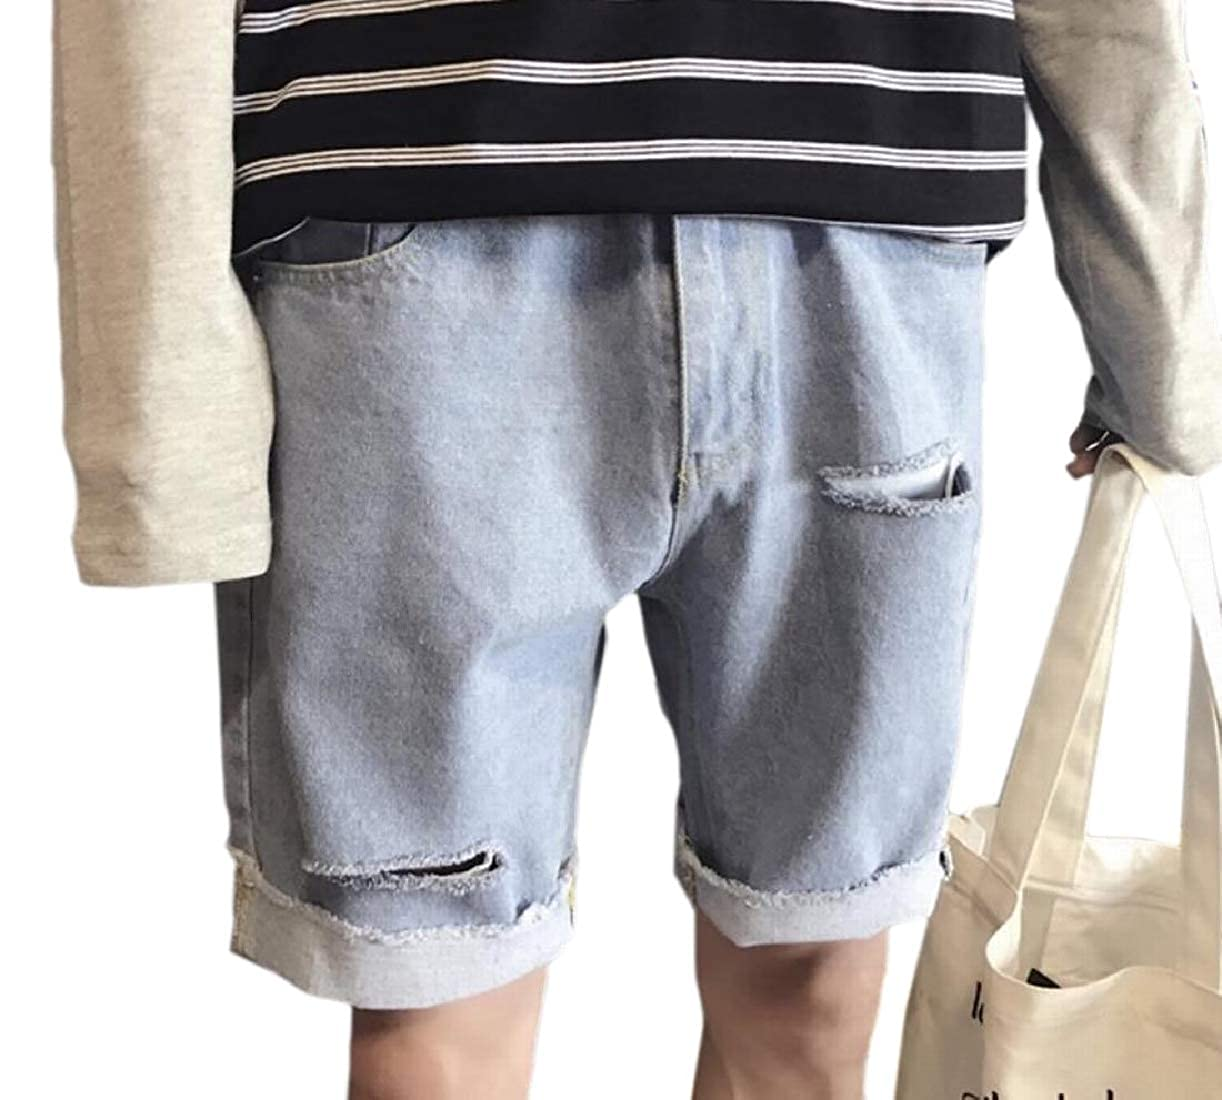 CBTLVSN Men Slim Shorts Ripped Distressed Washed Denim Shorts with Hole